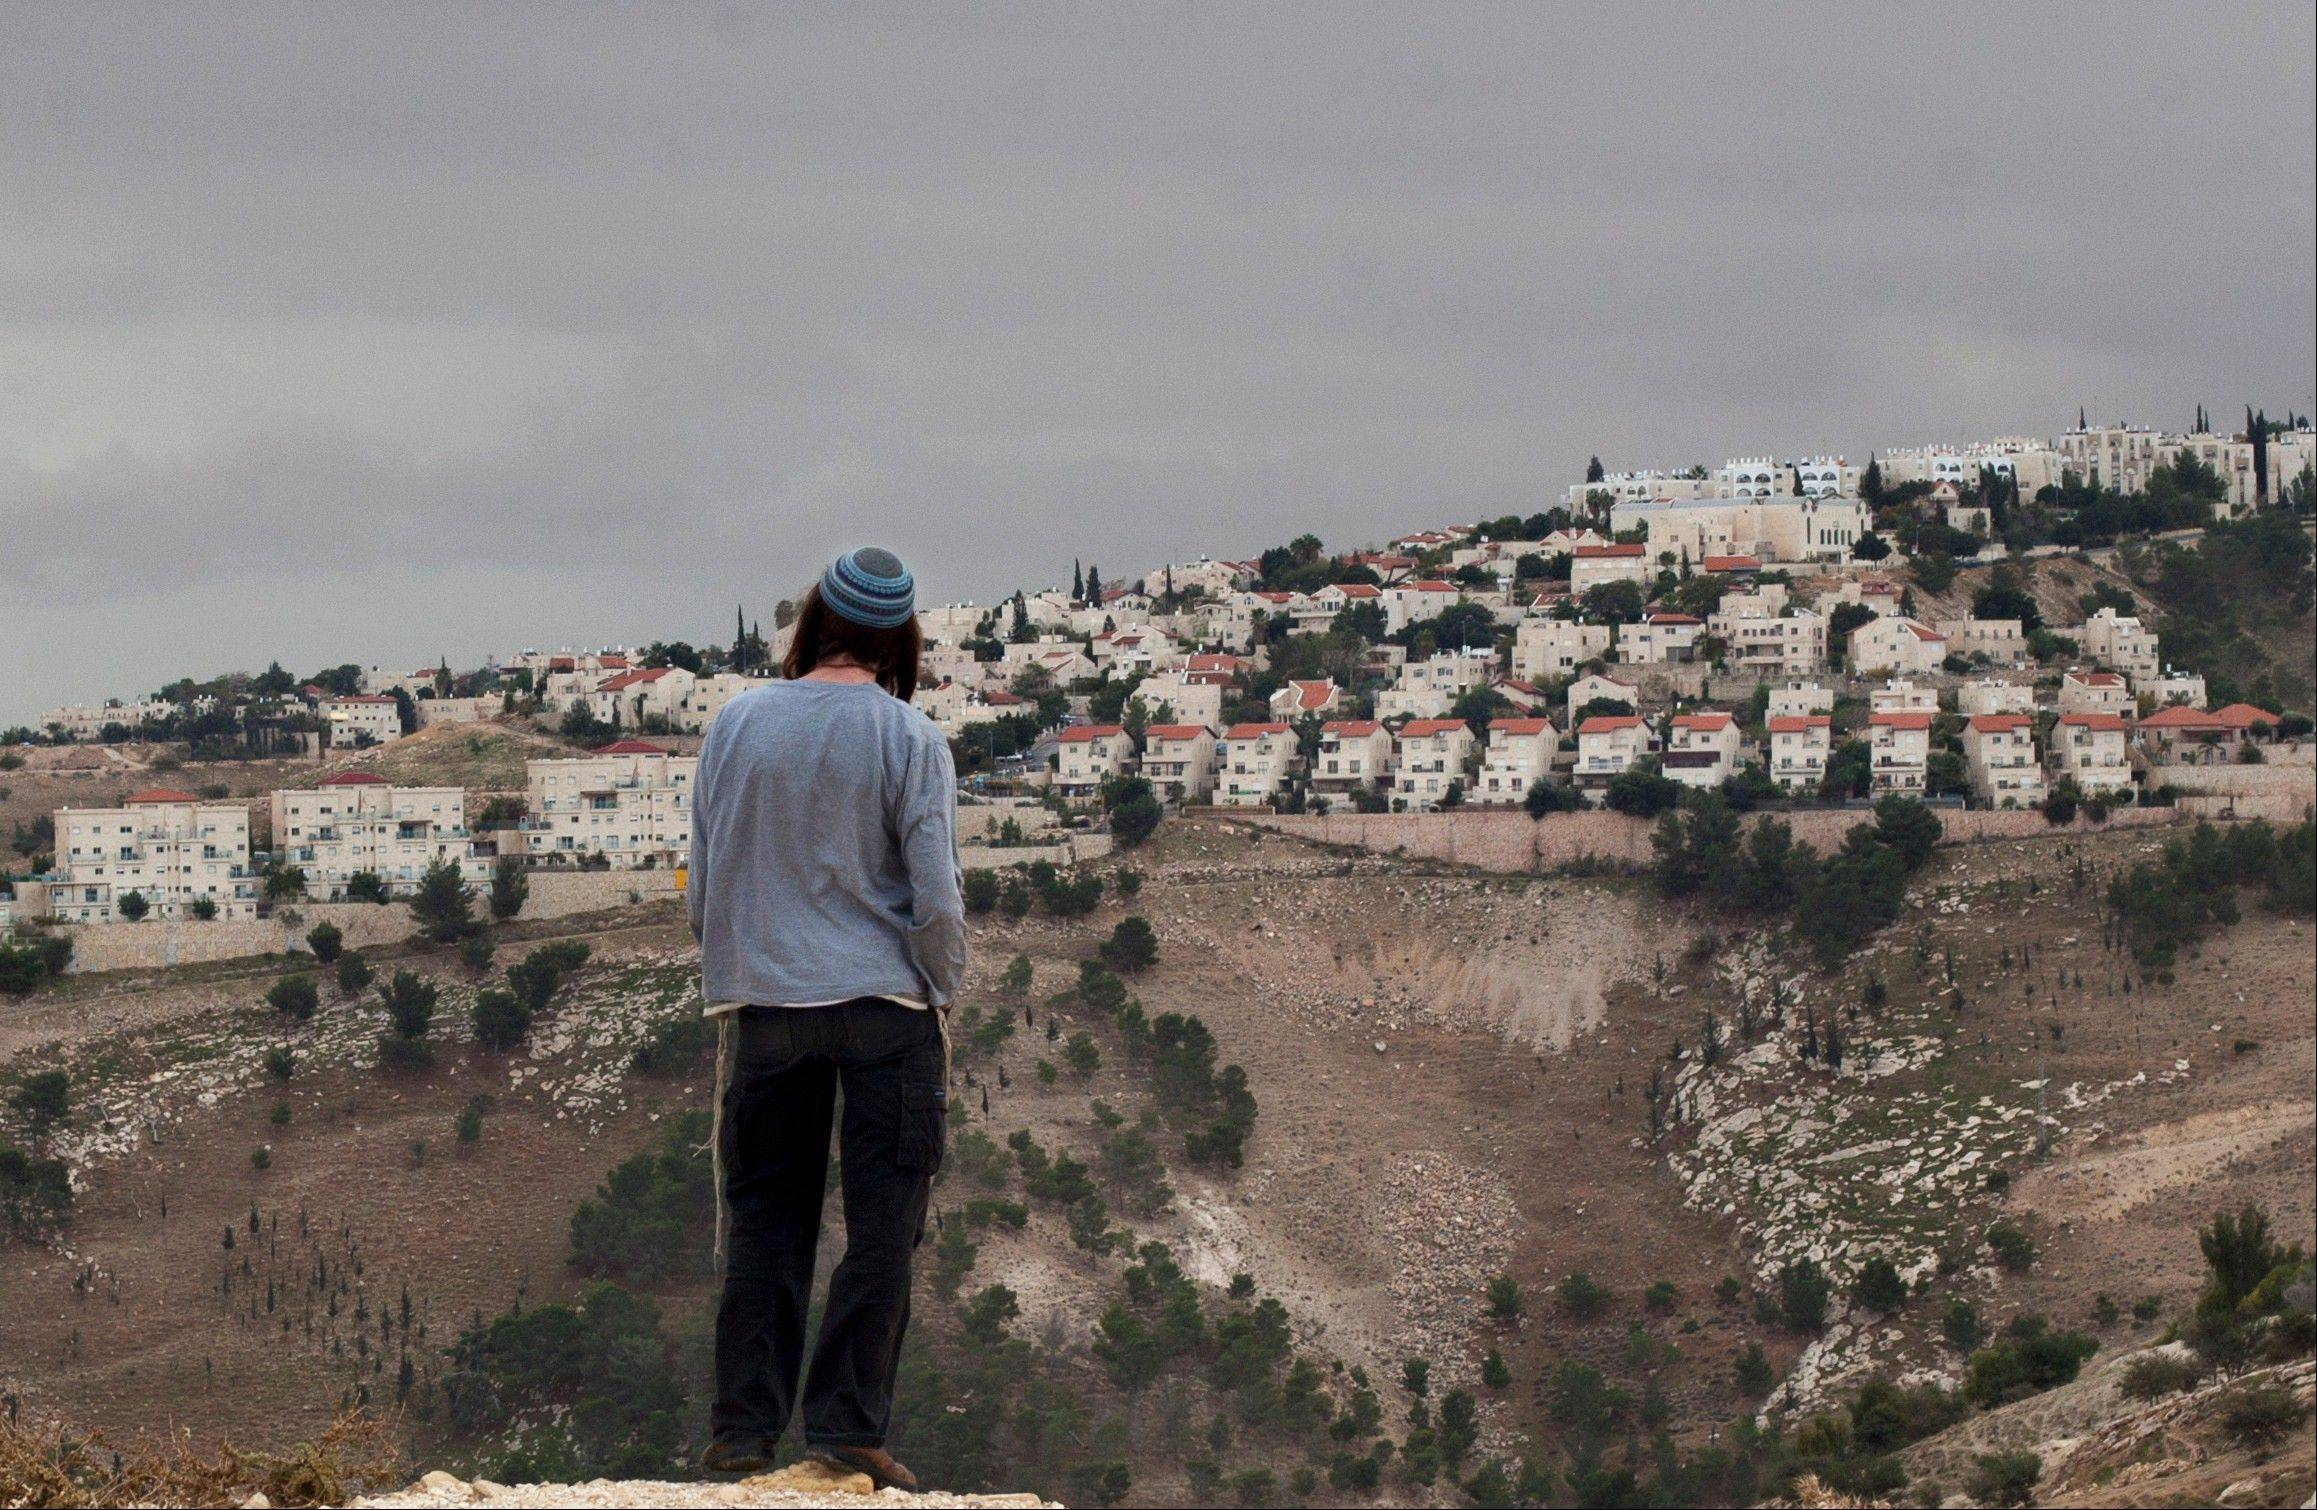 A Jewish settler looks at the West bank settlement of Maaleh Adumim, from the E-1 area on the eastern outskirts of Jerusalem, Wednesday, Dec. 5, 2012. An Israeli-Palestinian showdown over plans for new Jewish settlements around Jerusalem escalated on Wed